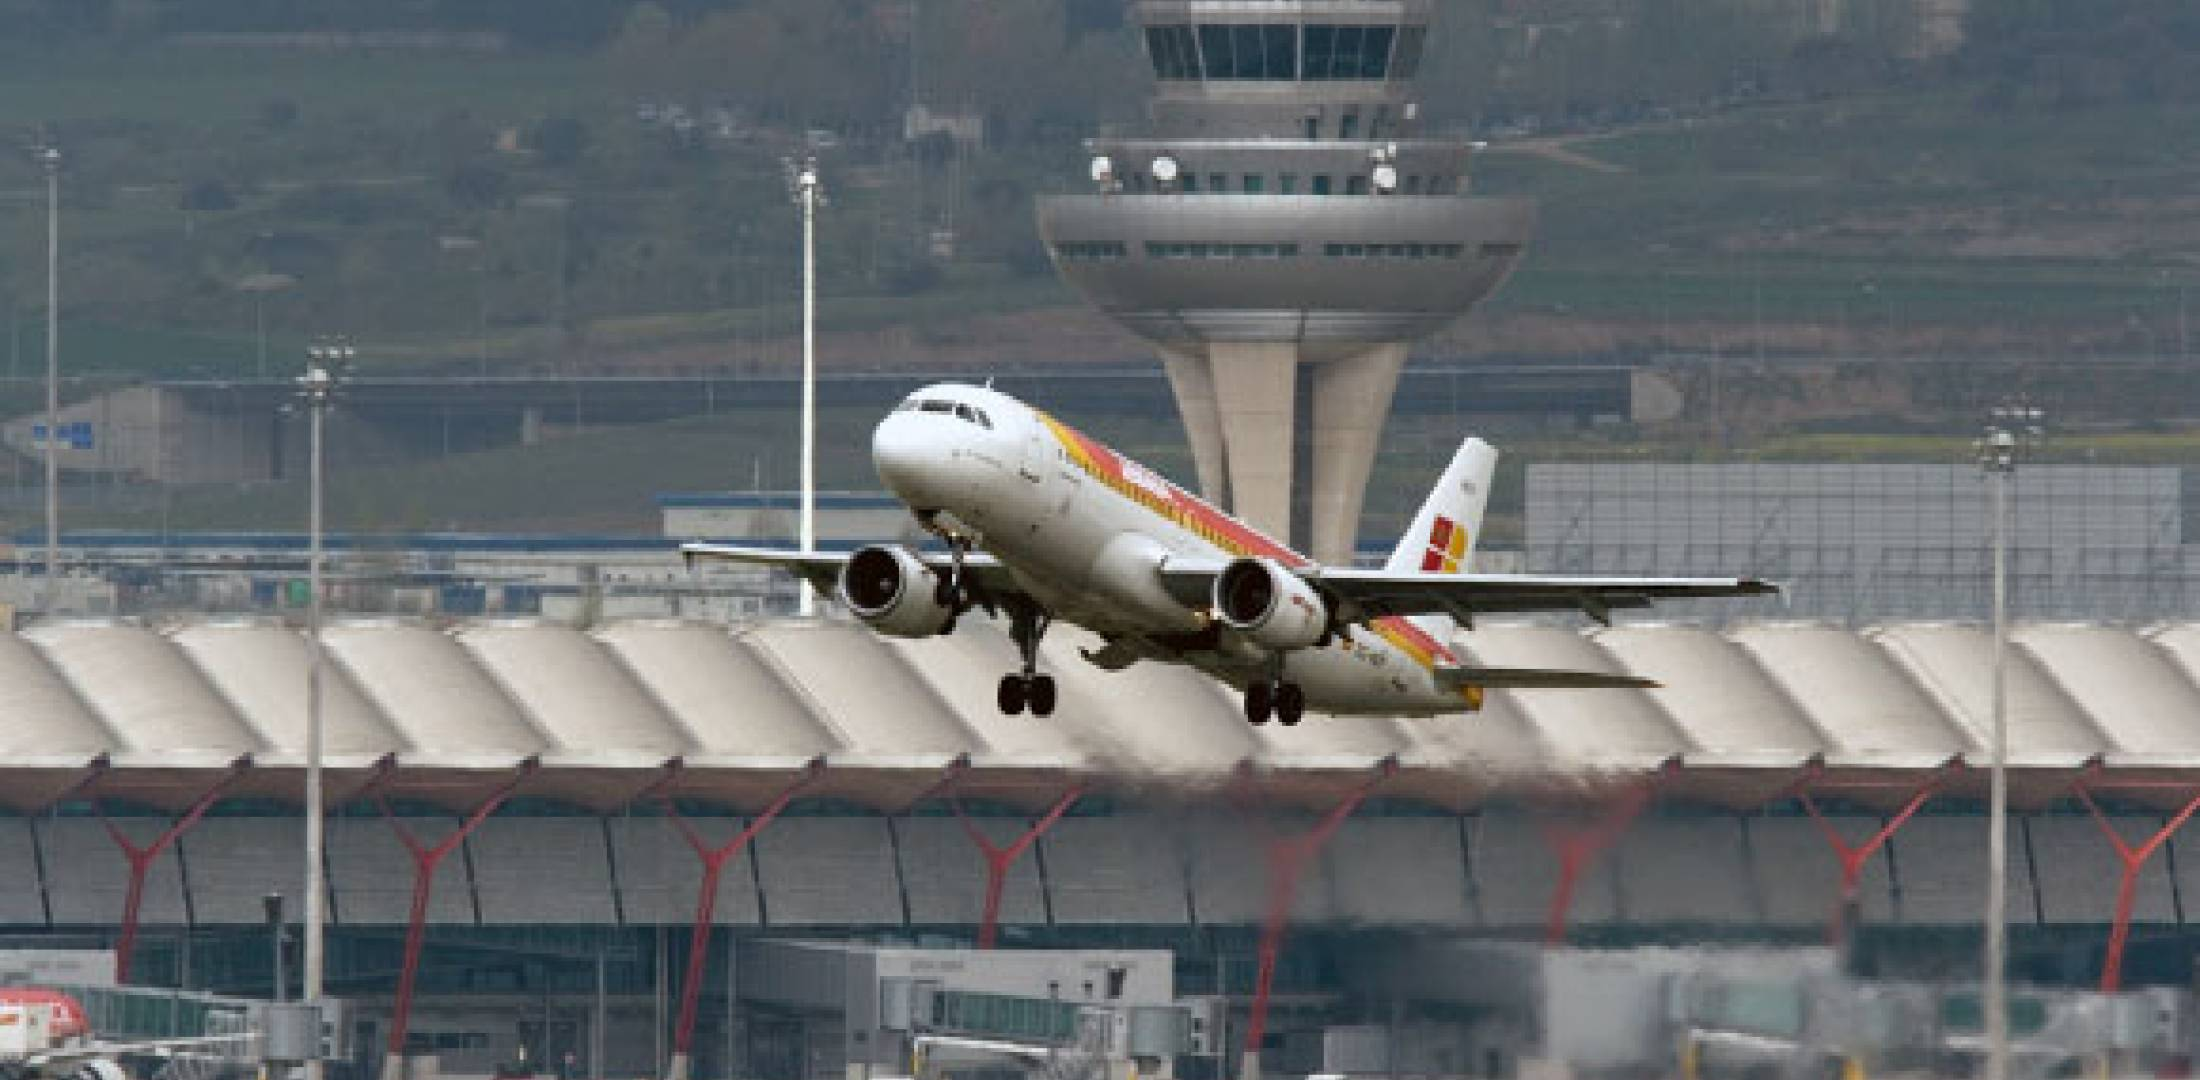 Iberia A320 taking off from Madrid Barajas Airport